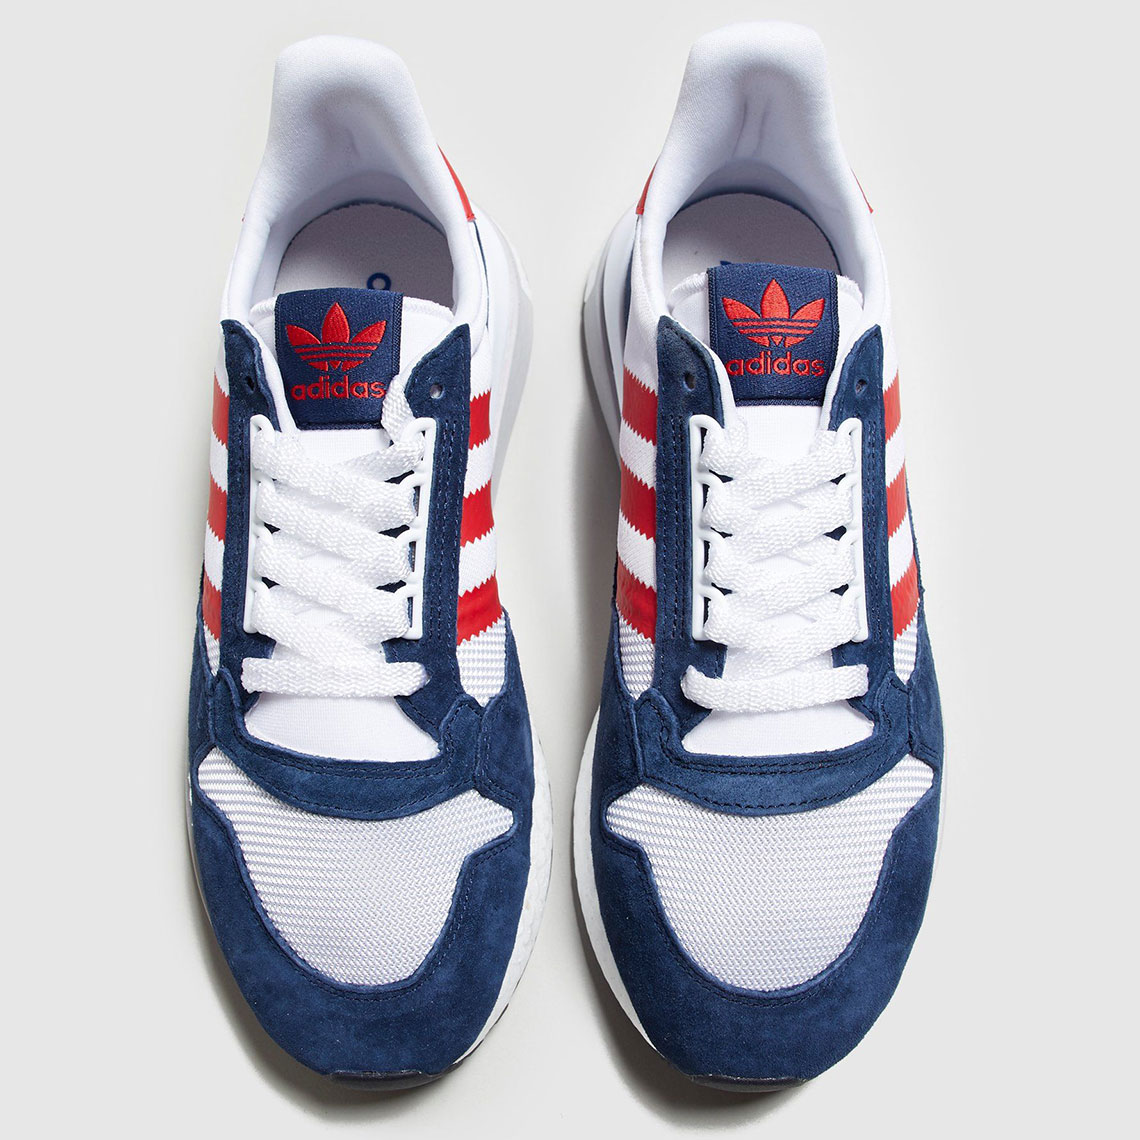 sports shoes f38e3 5a37f adidas ZX 500 RM Navy Red   SneakerNews.com